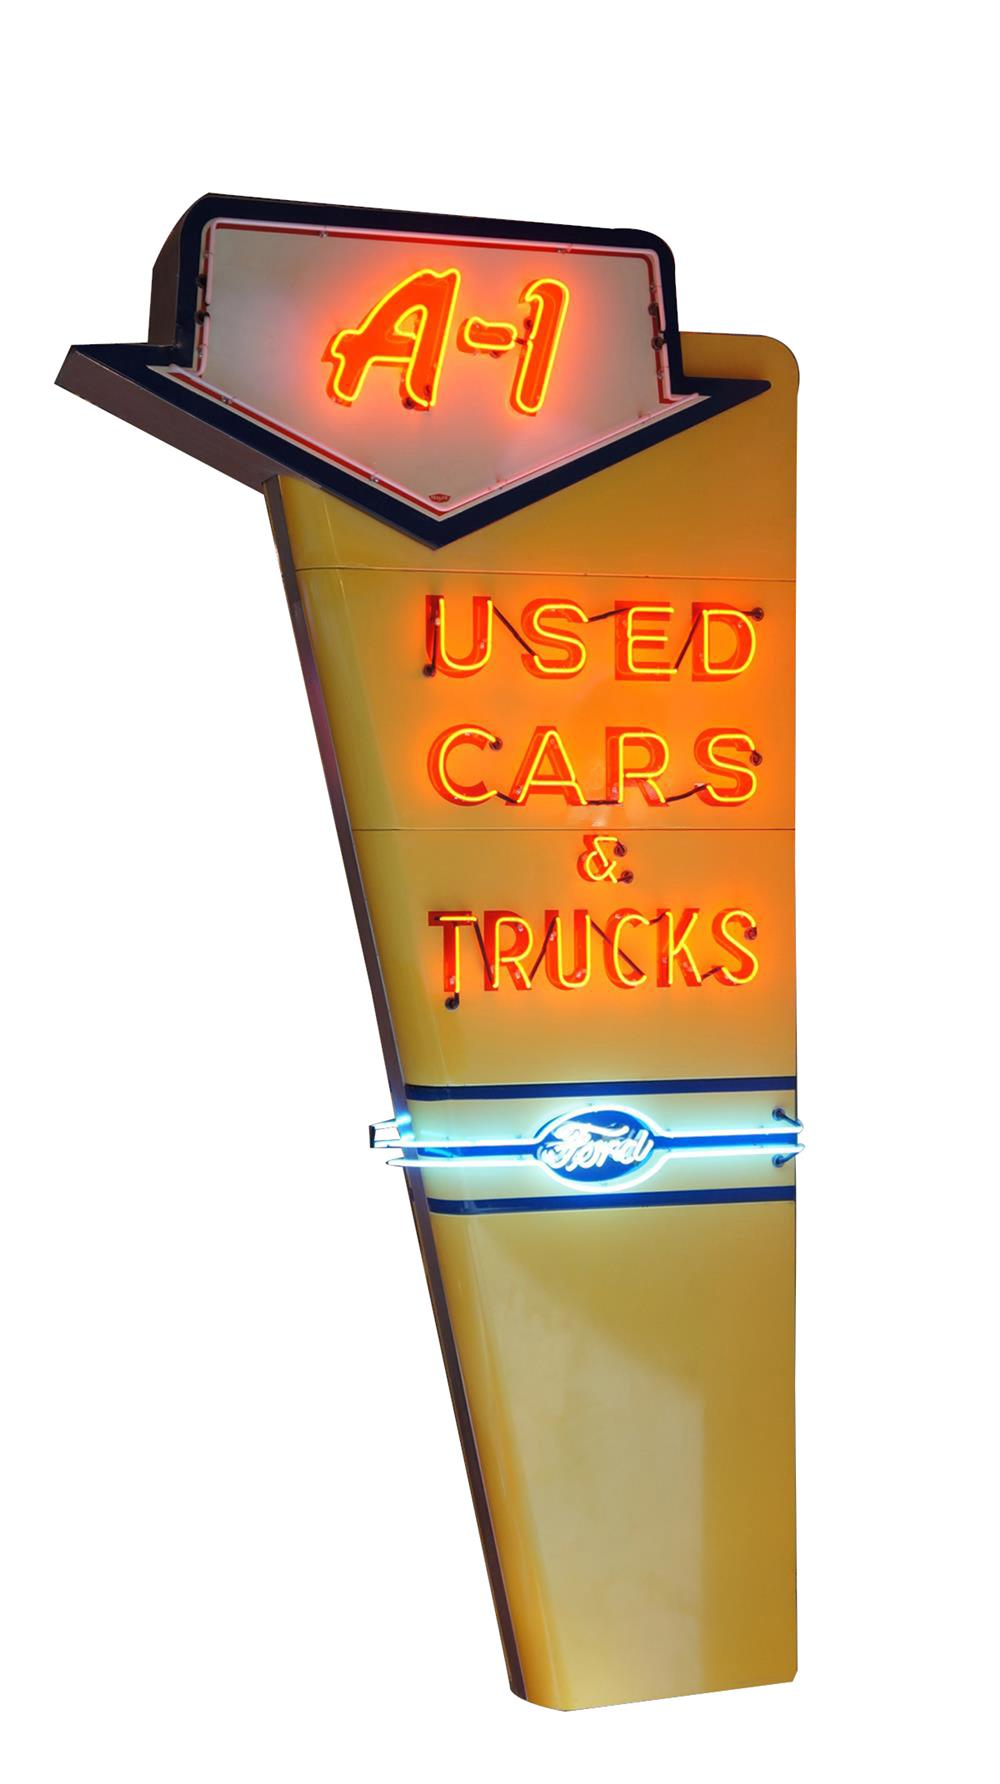 Lot #6396 Spectacular 1950s Ford A-1 Used Cars and Trucks double-sided neon porcelain dealership sign.